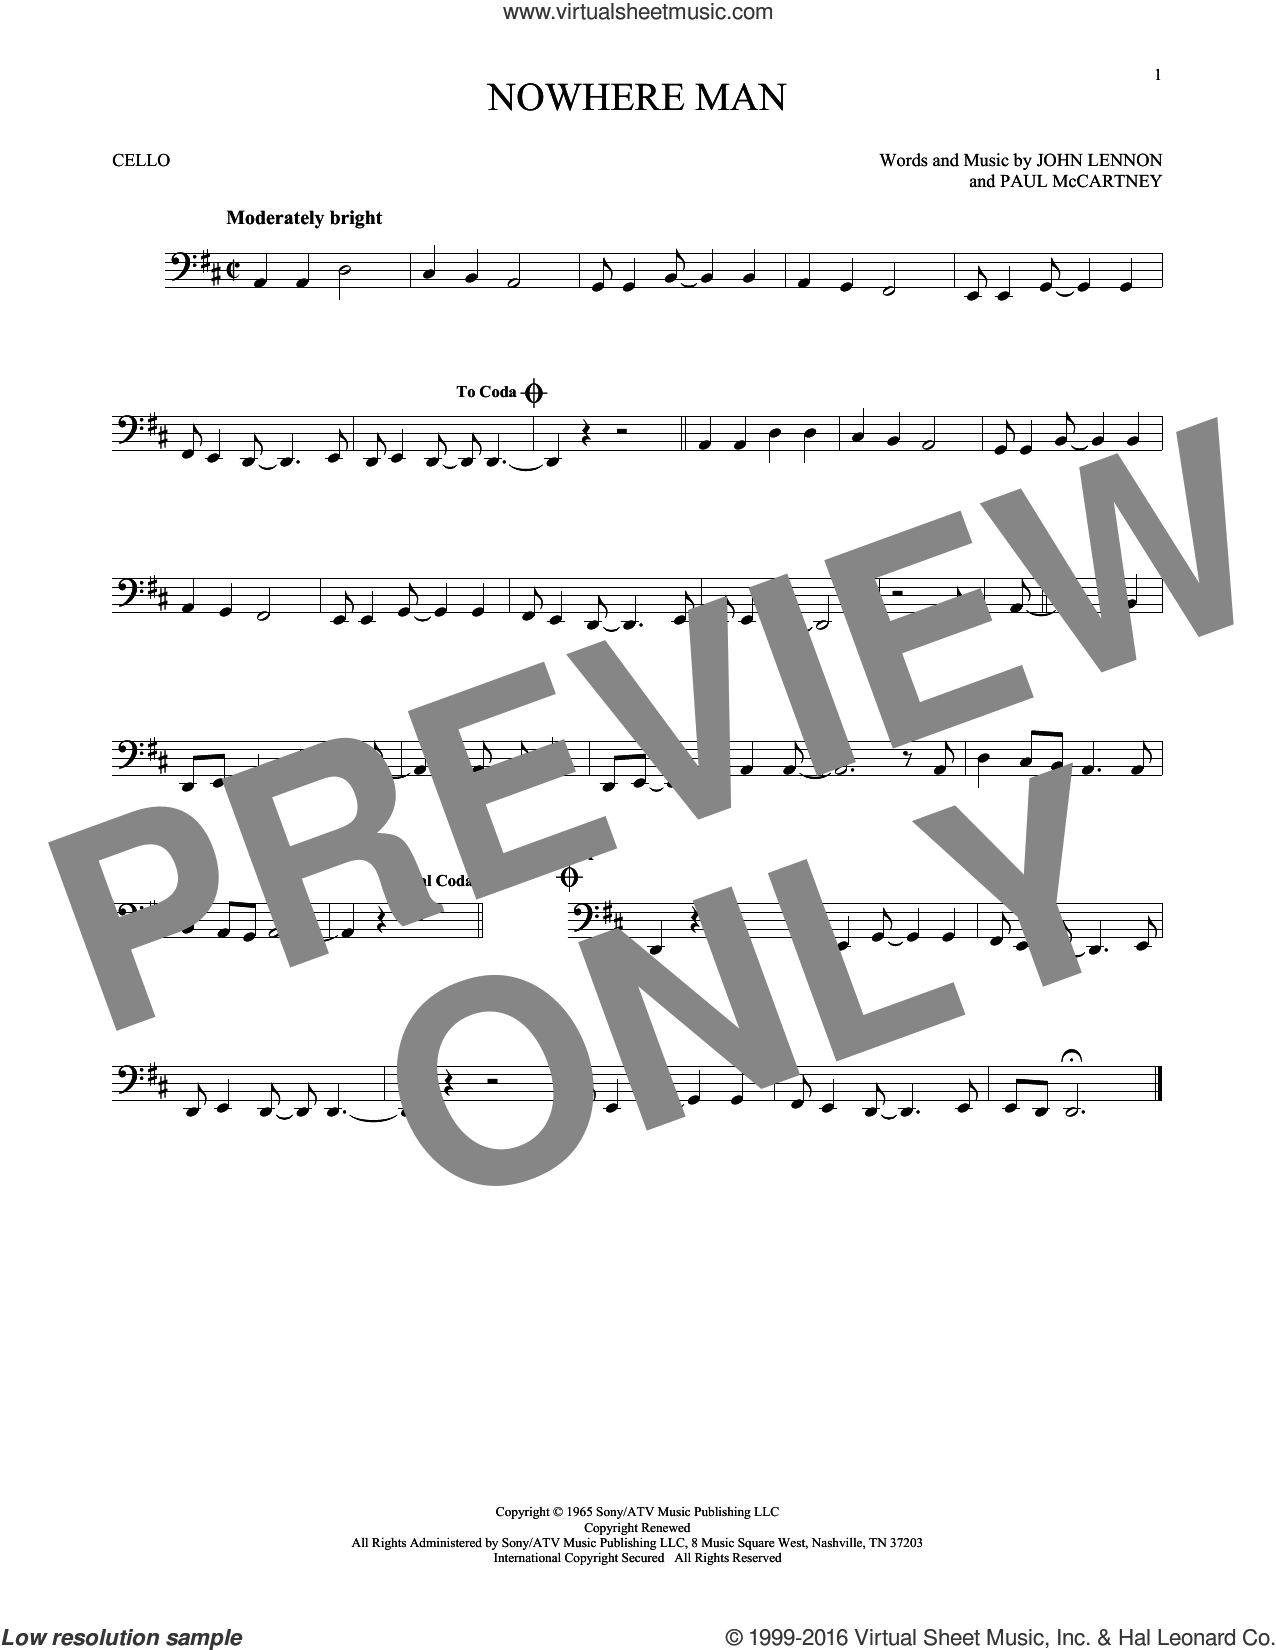 Nowhere Man sheet music for cello solo by Paul McCartney, The Beatles and John Lennon. Score Image Preview.